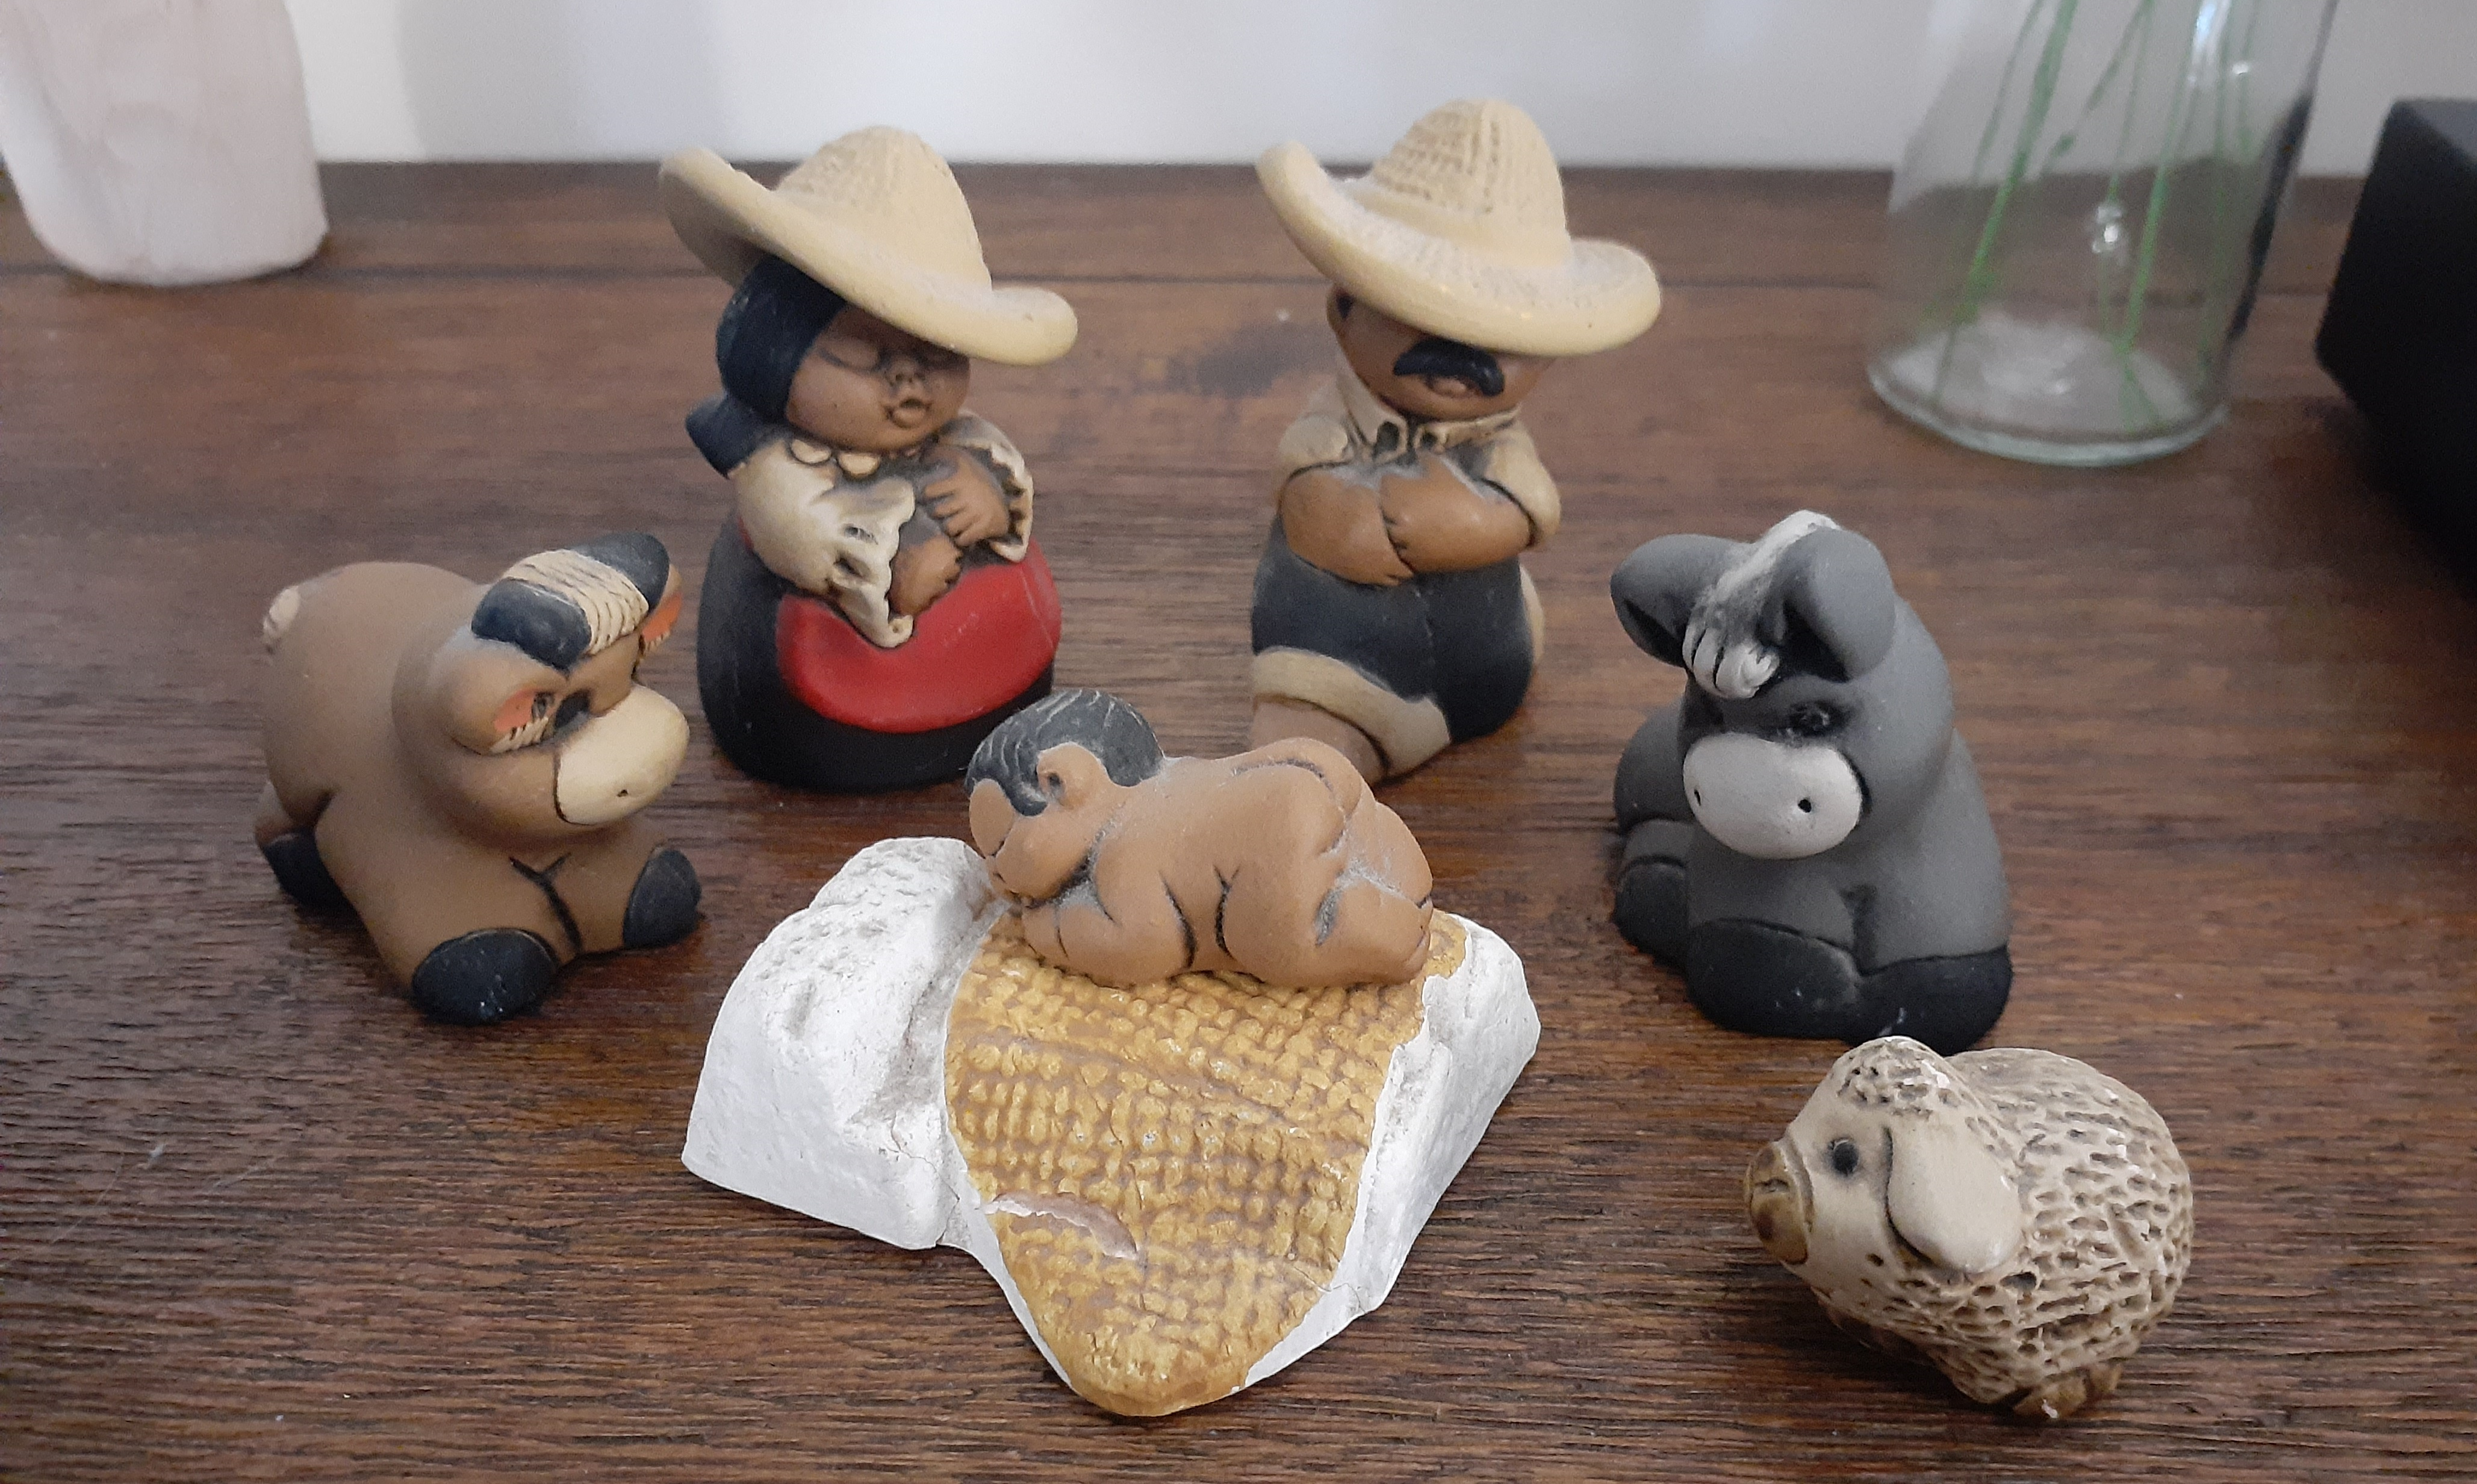 The Peruvian Nativity Scene